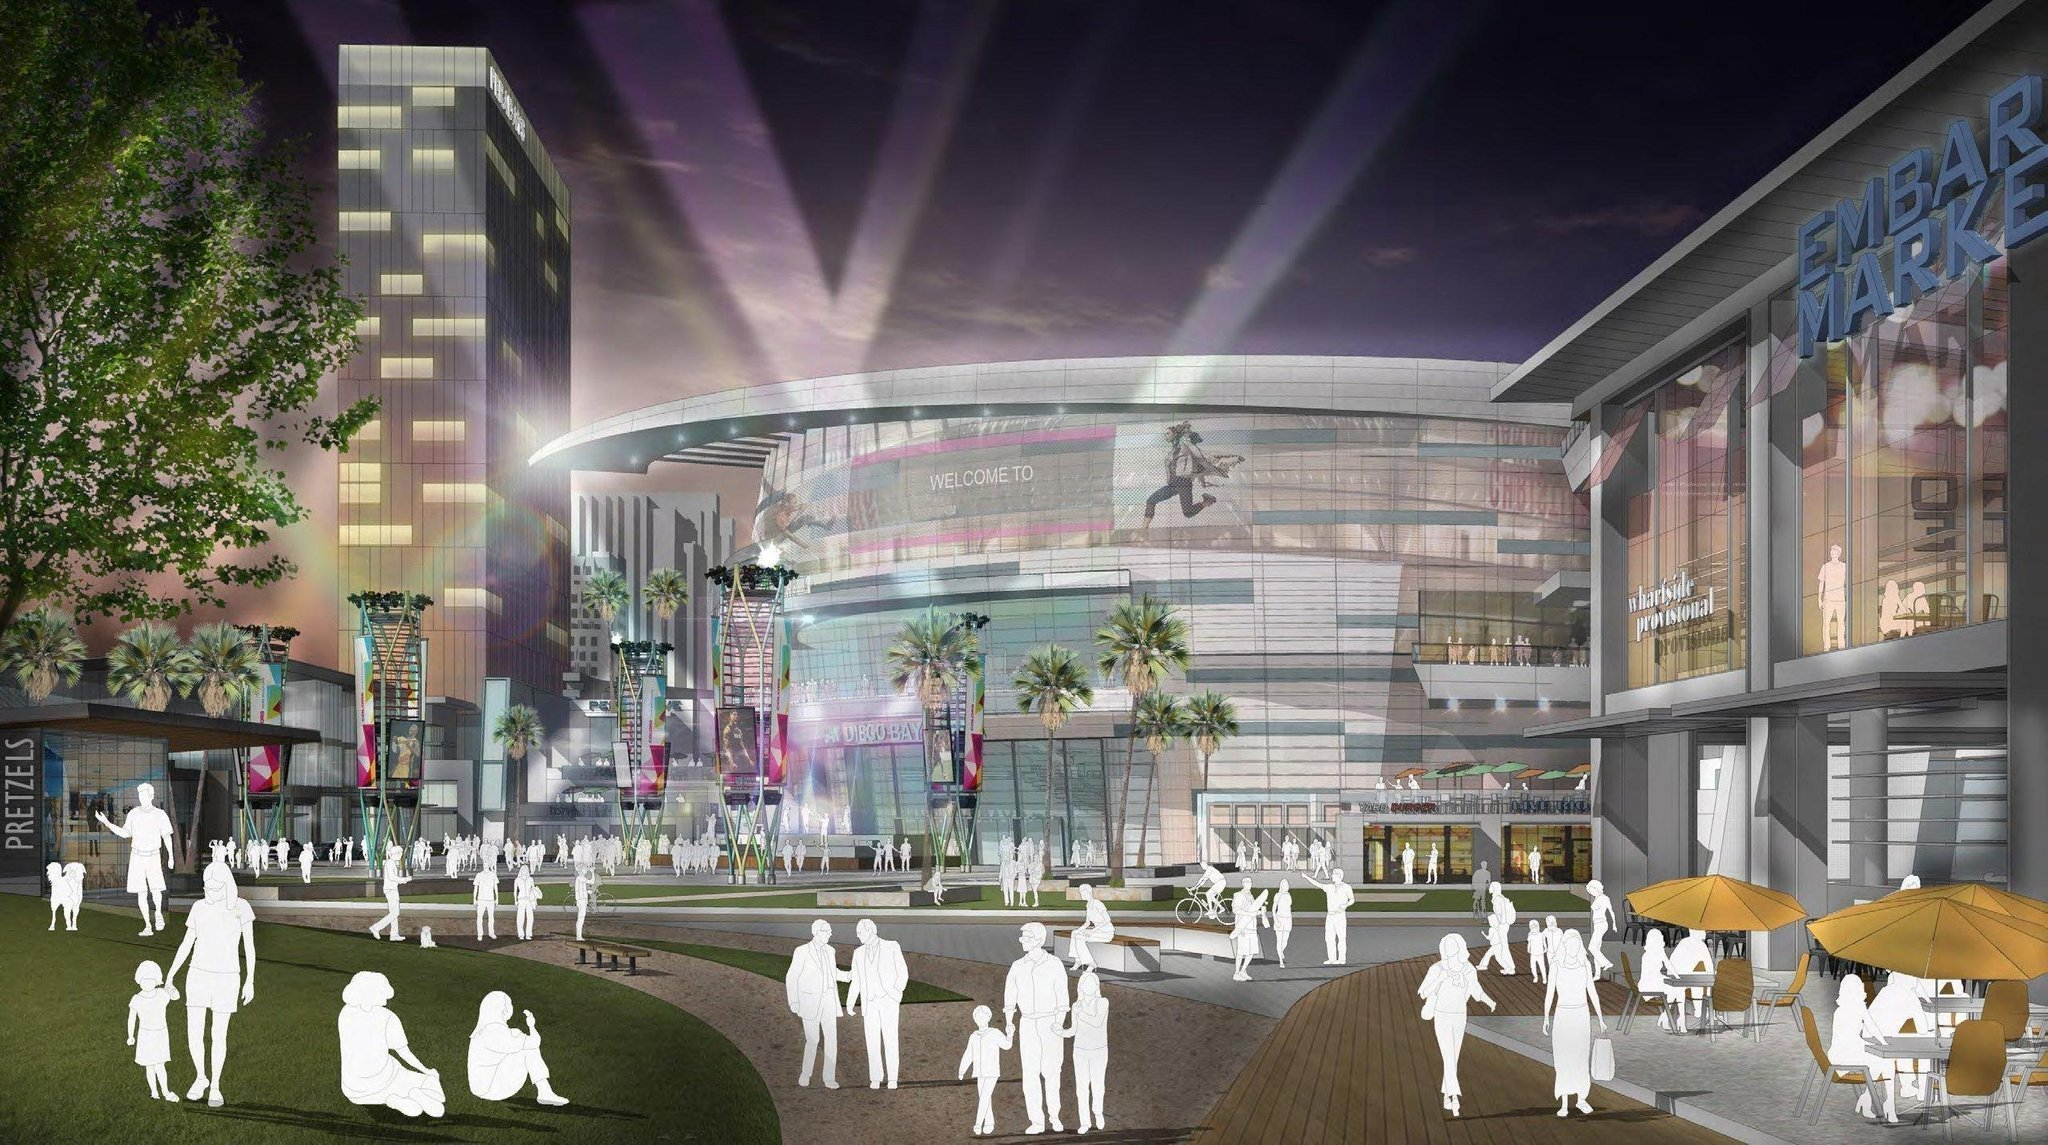 Proposed Seaport Village Arena Could Be A Changer The San Go Union Tribune